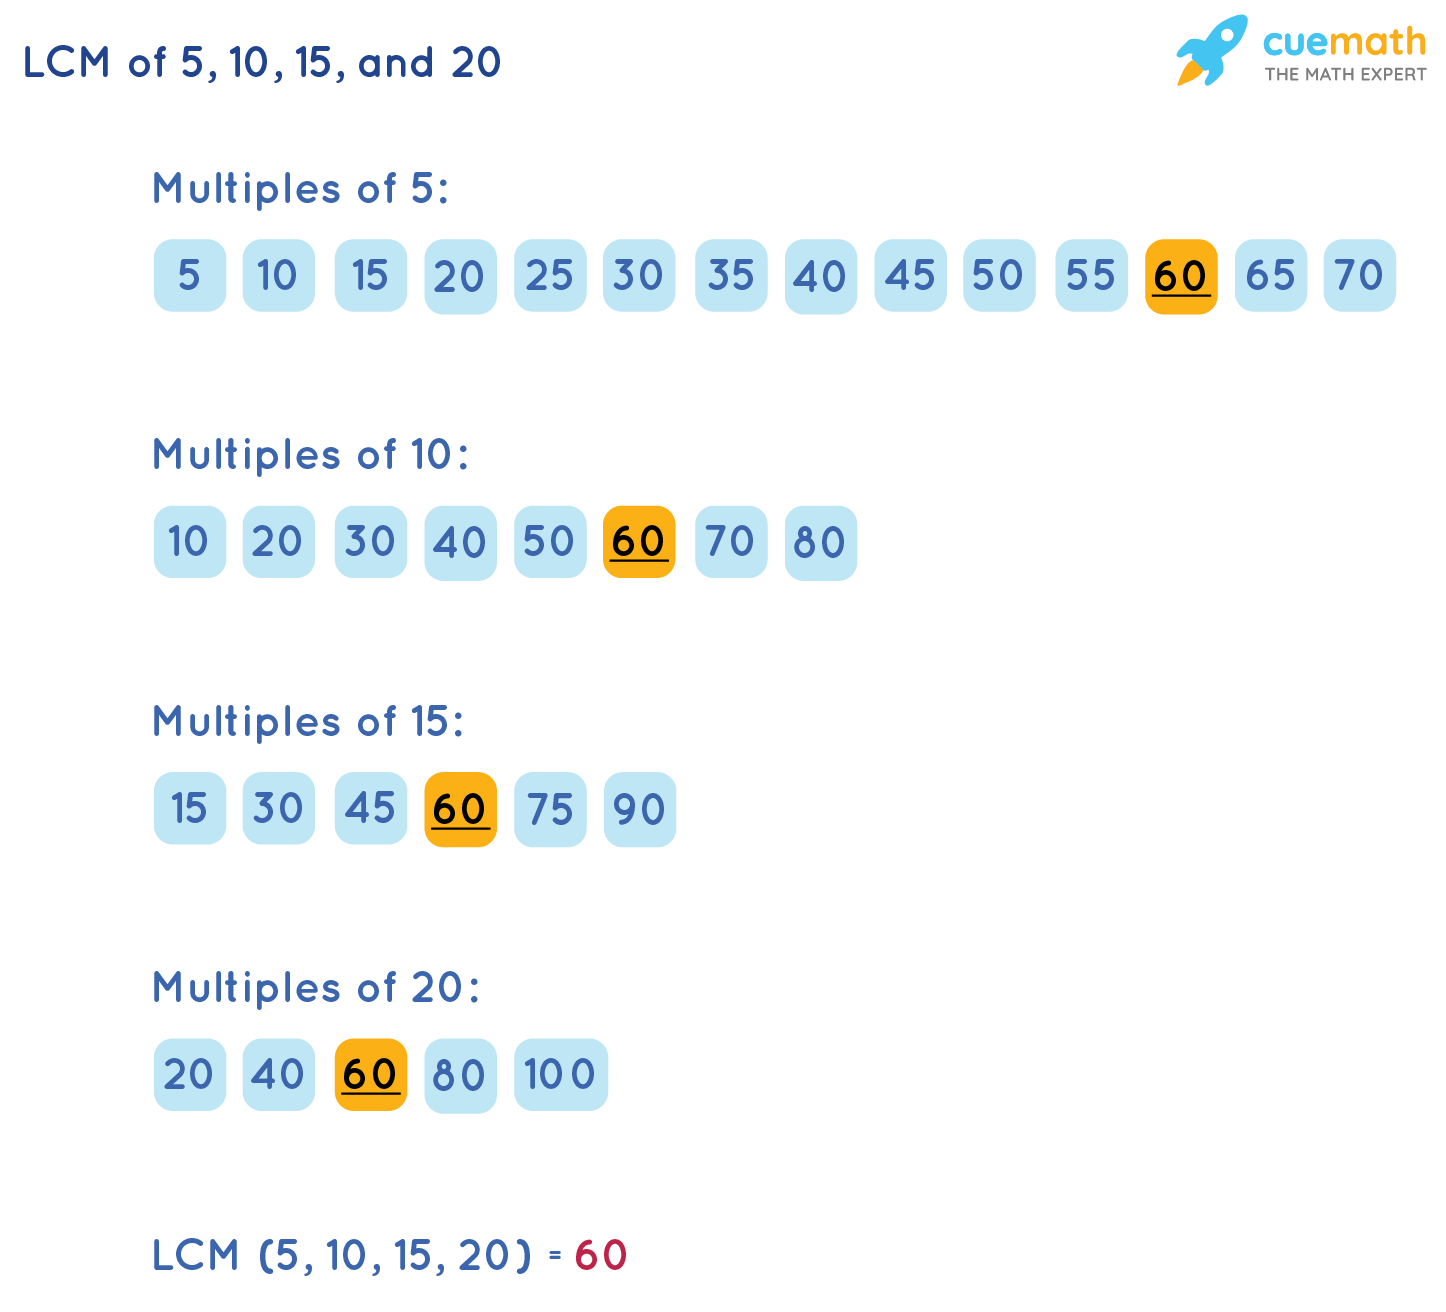 LCM of 5, 10, 15, and 20 by Listing Method